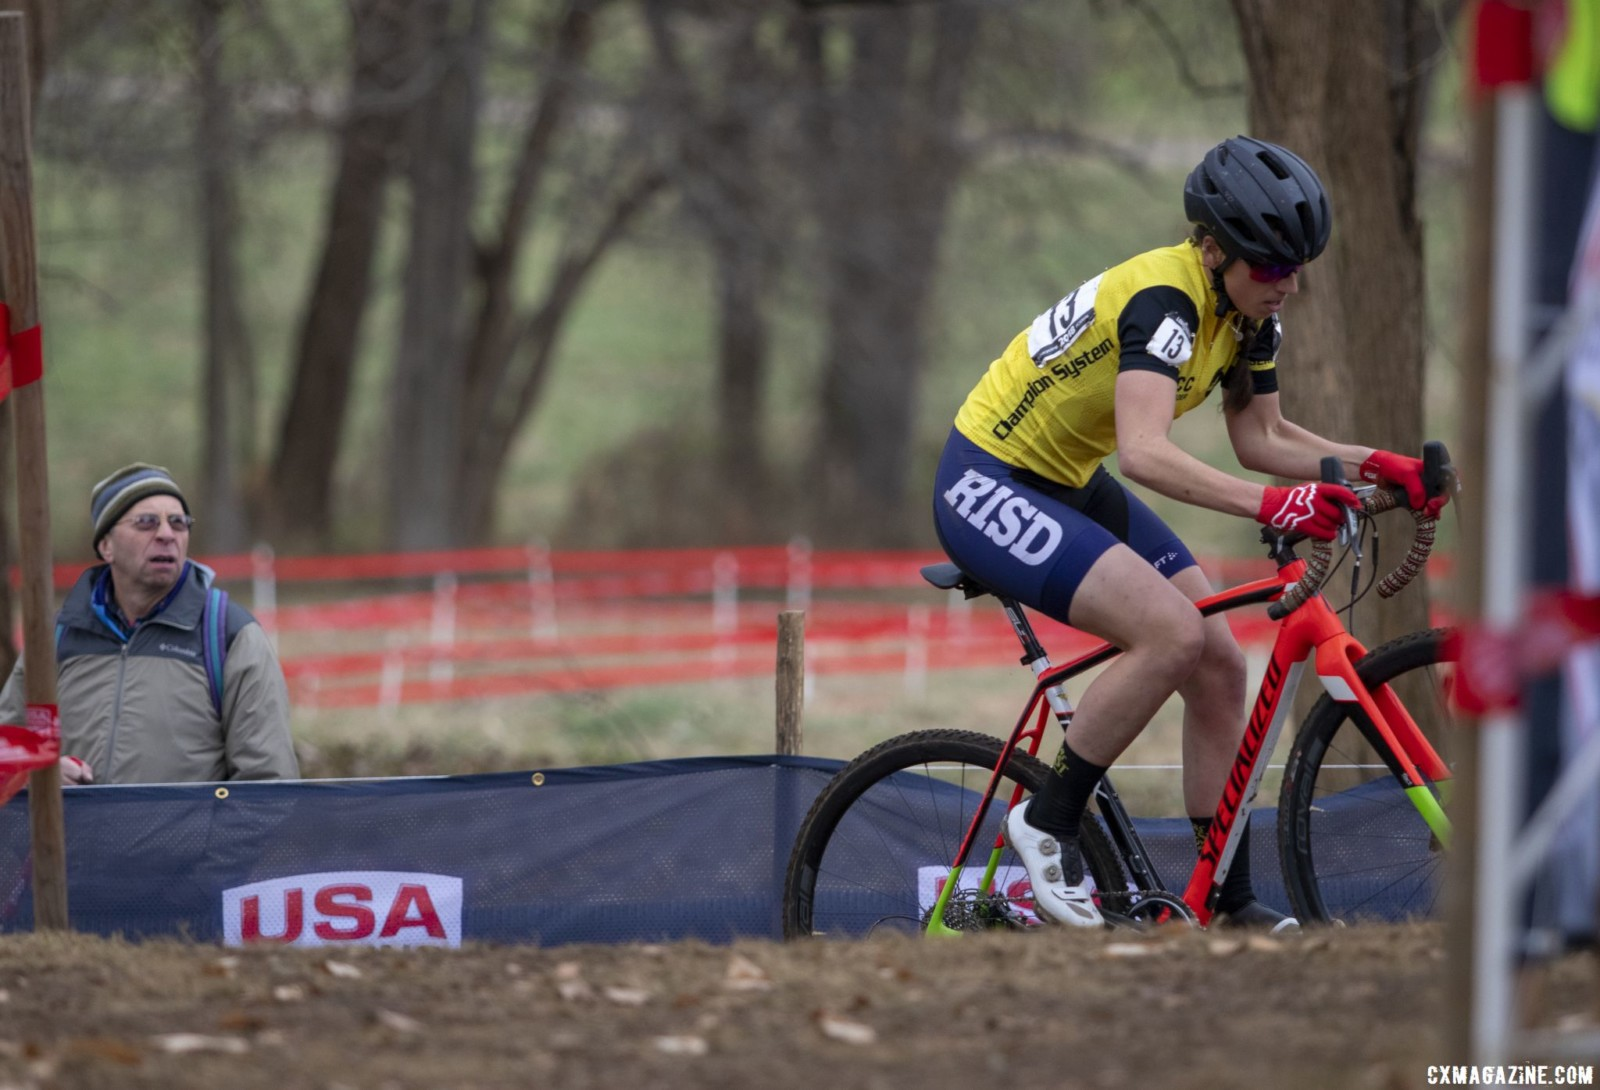 Rossi led Oneill into the technical off camber. Collegiate Club Women. 2018 Cyclocross National Championships, Louisville, KY. © A. Yee / Cyclocross Magazine